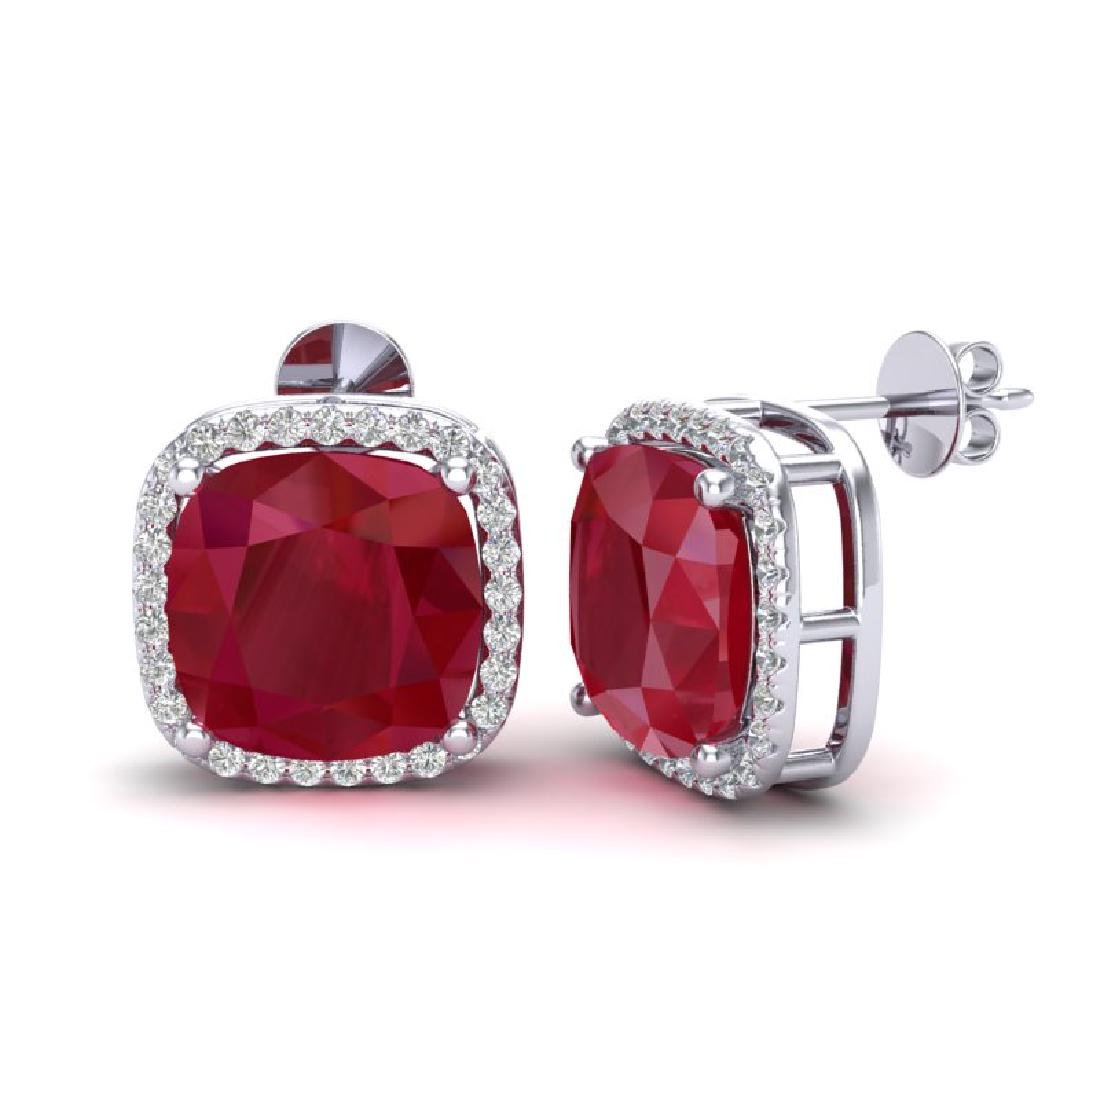 12 CTW Ruby & Micro Pave Halo VS/SI Diamond Earrings - 2